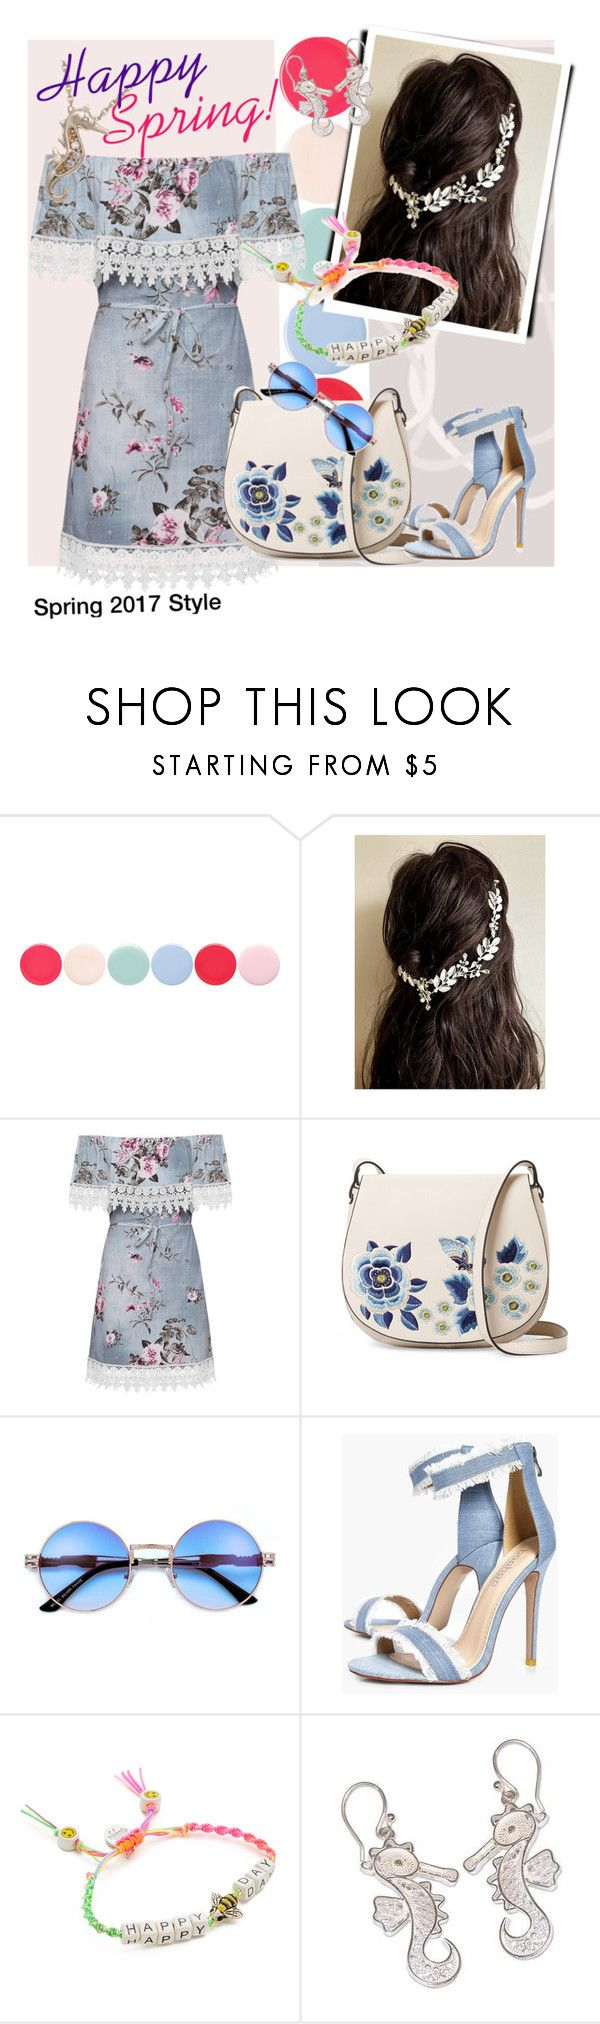 """""""Spring 2017 Style"""" by andrea-pok on Polyvore featuring Nails Inc., WearAll, French Connection, Boohoo, Venessa Arizaga and NOVICA"""